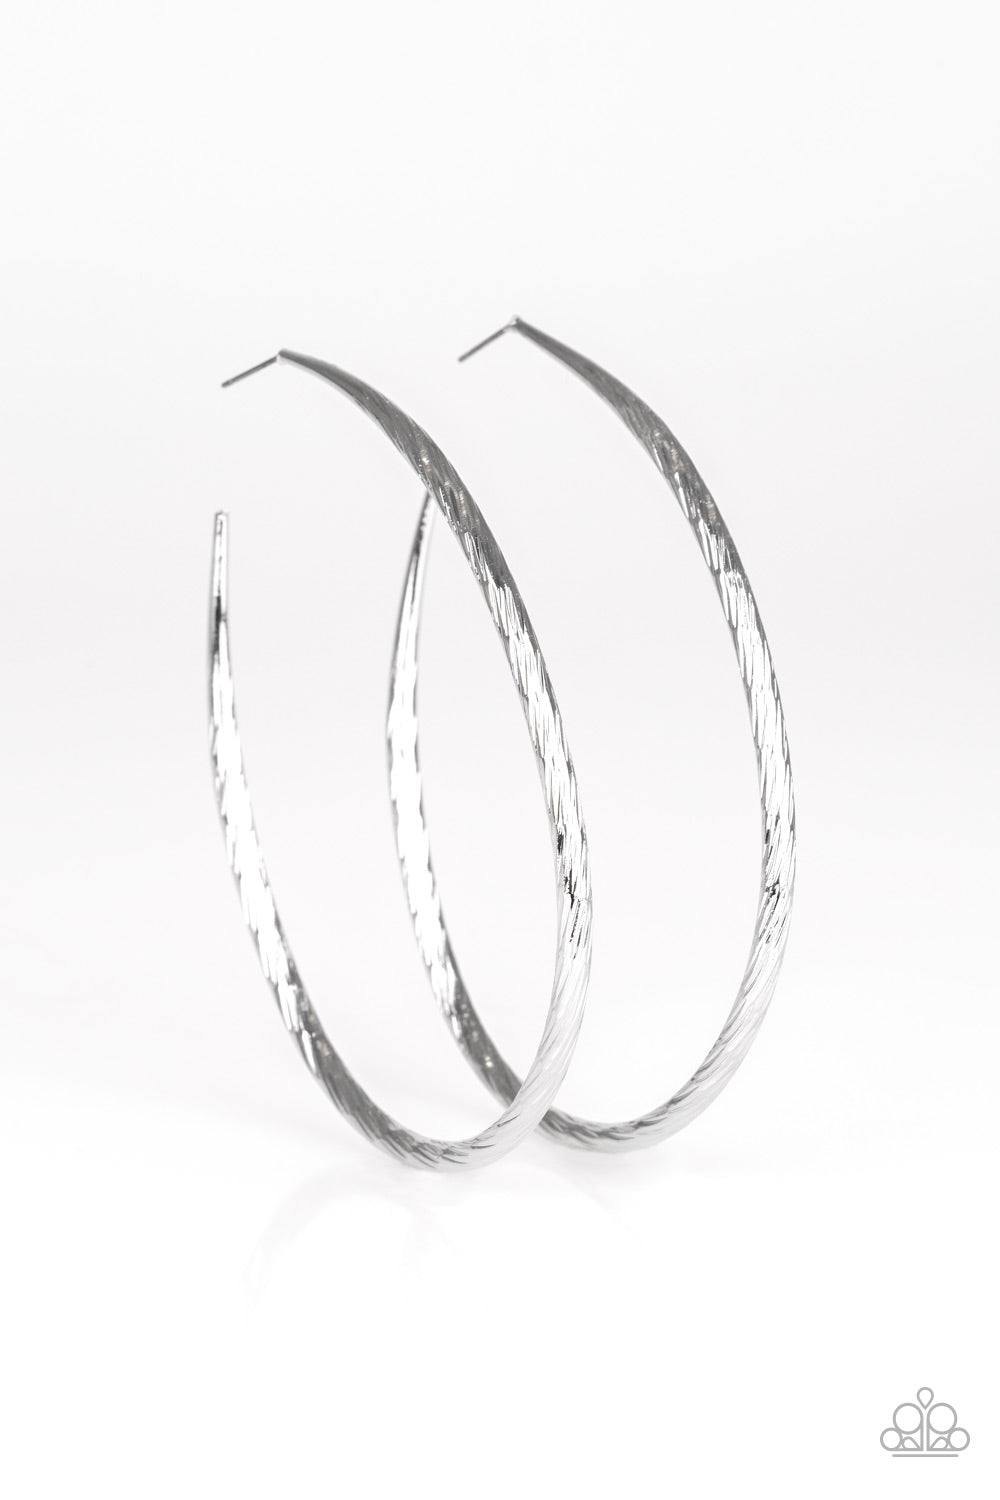 Paparazzi Accessories - Paparazzi Fleek All Week - Silver Asymmetrical Hoop Earring - Earrings